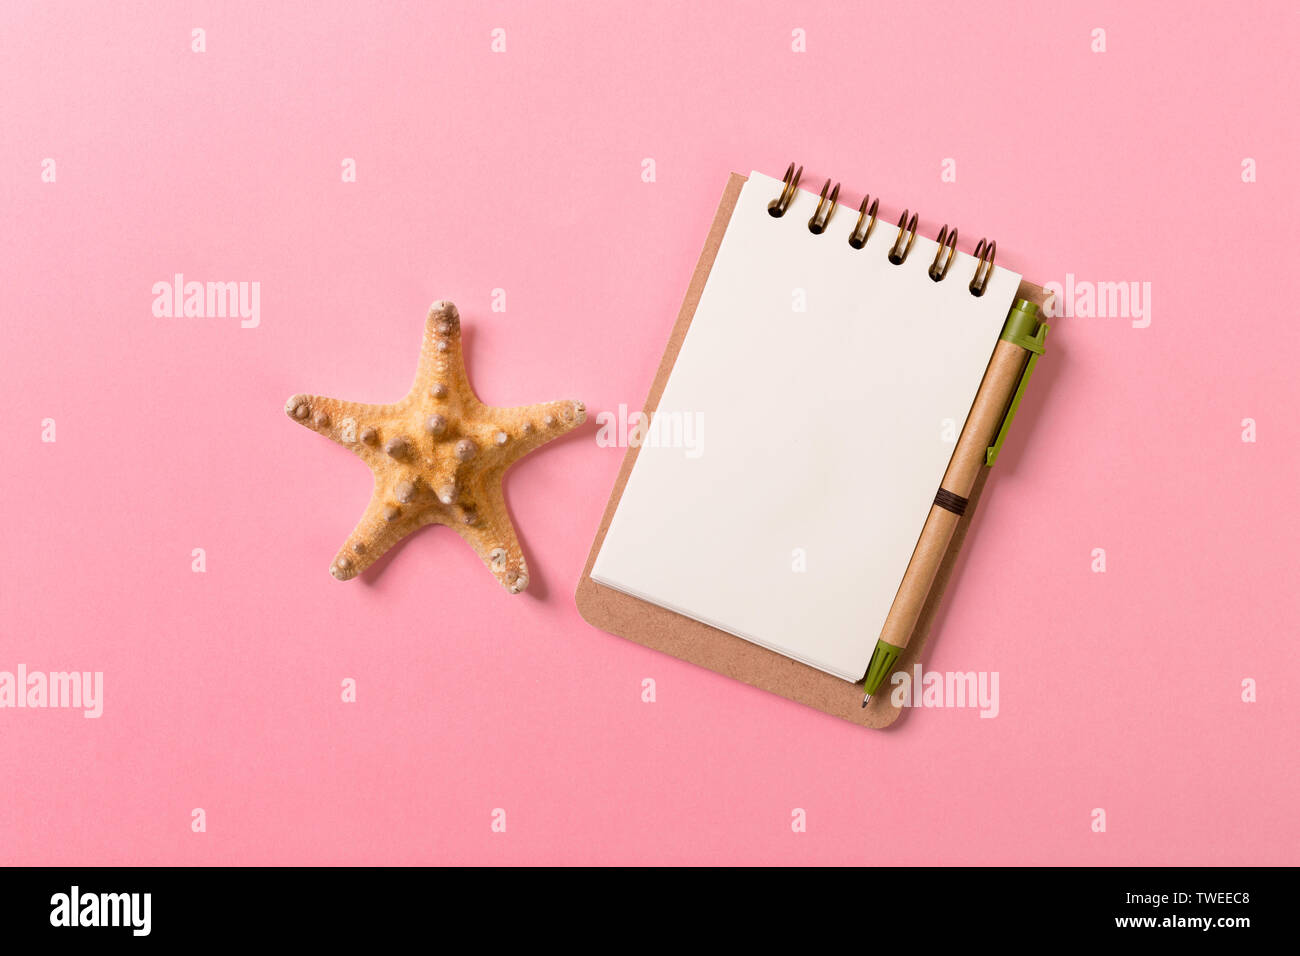 blank notebook with seashell for summer holiday pink background , Top view Flat lay concept. - Stock Image